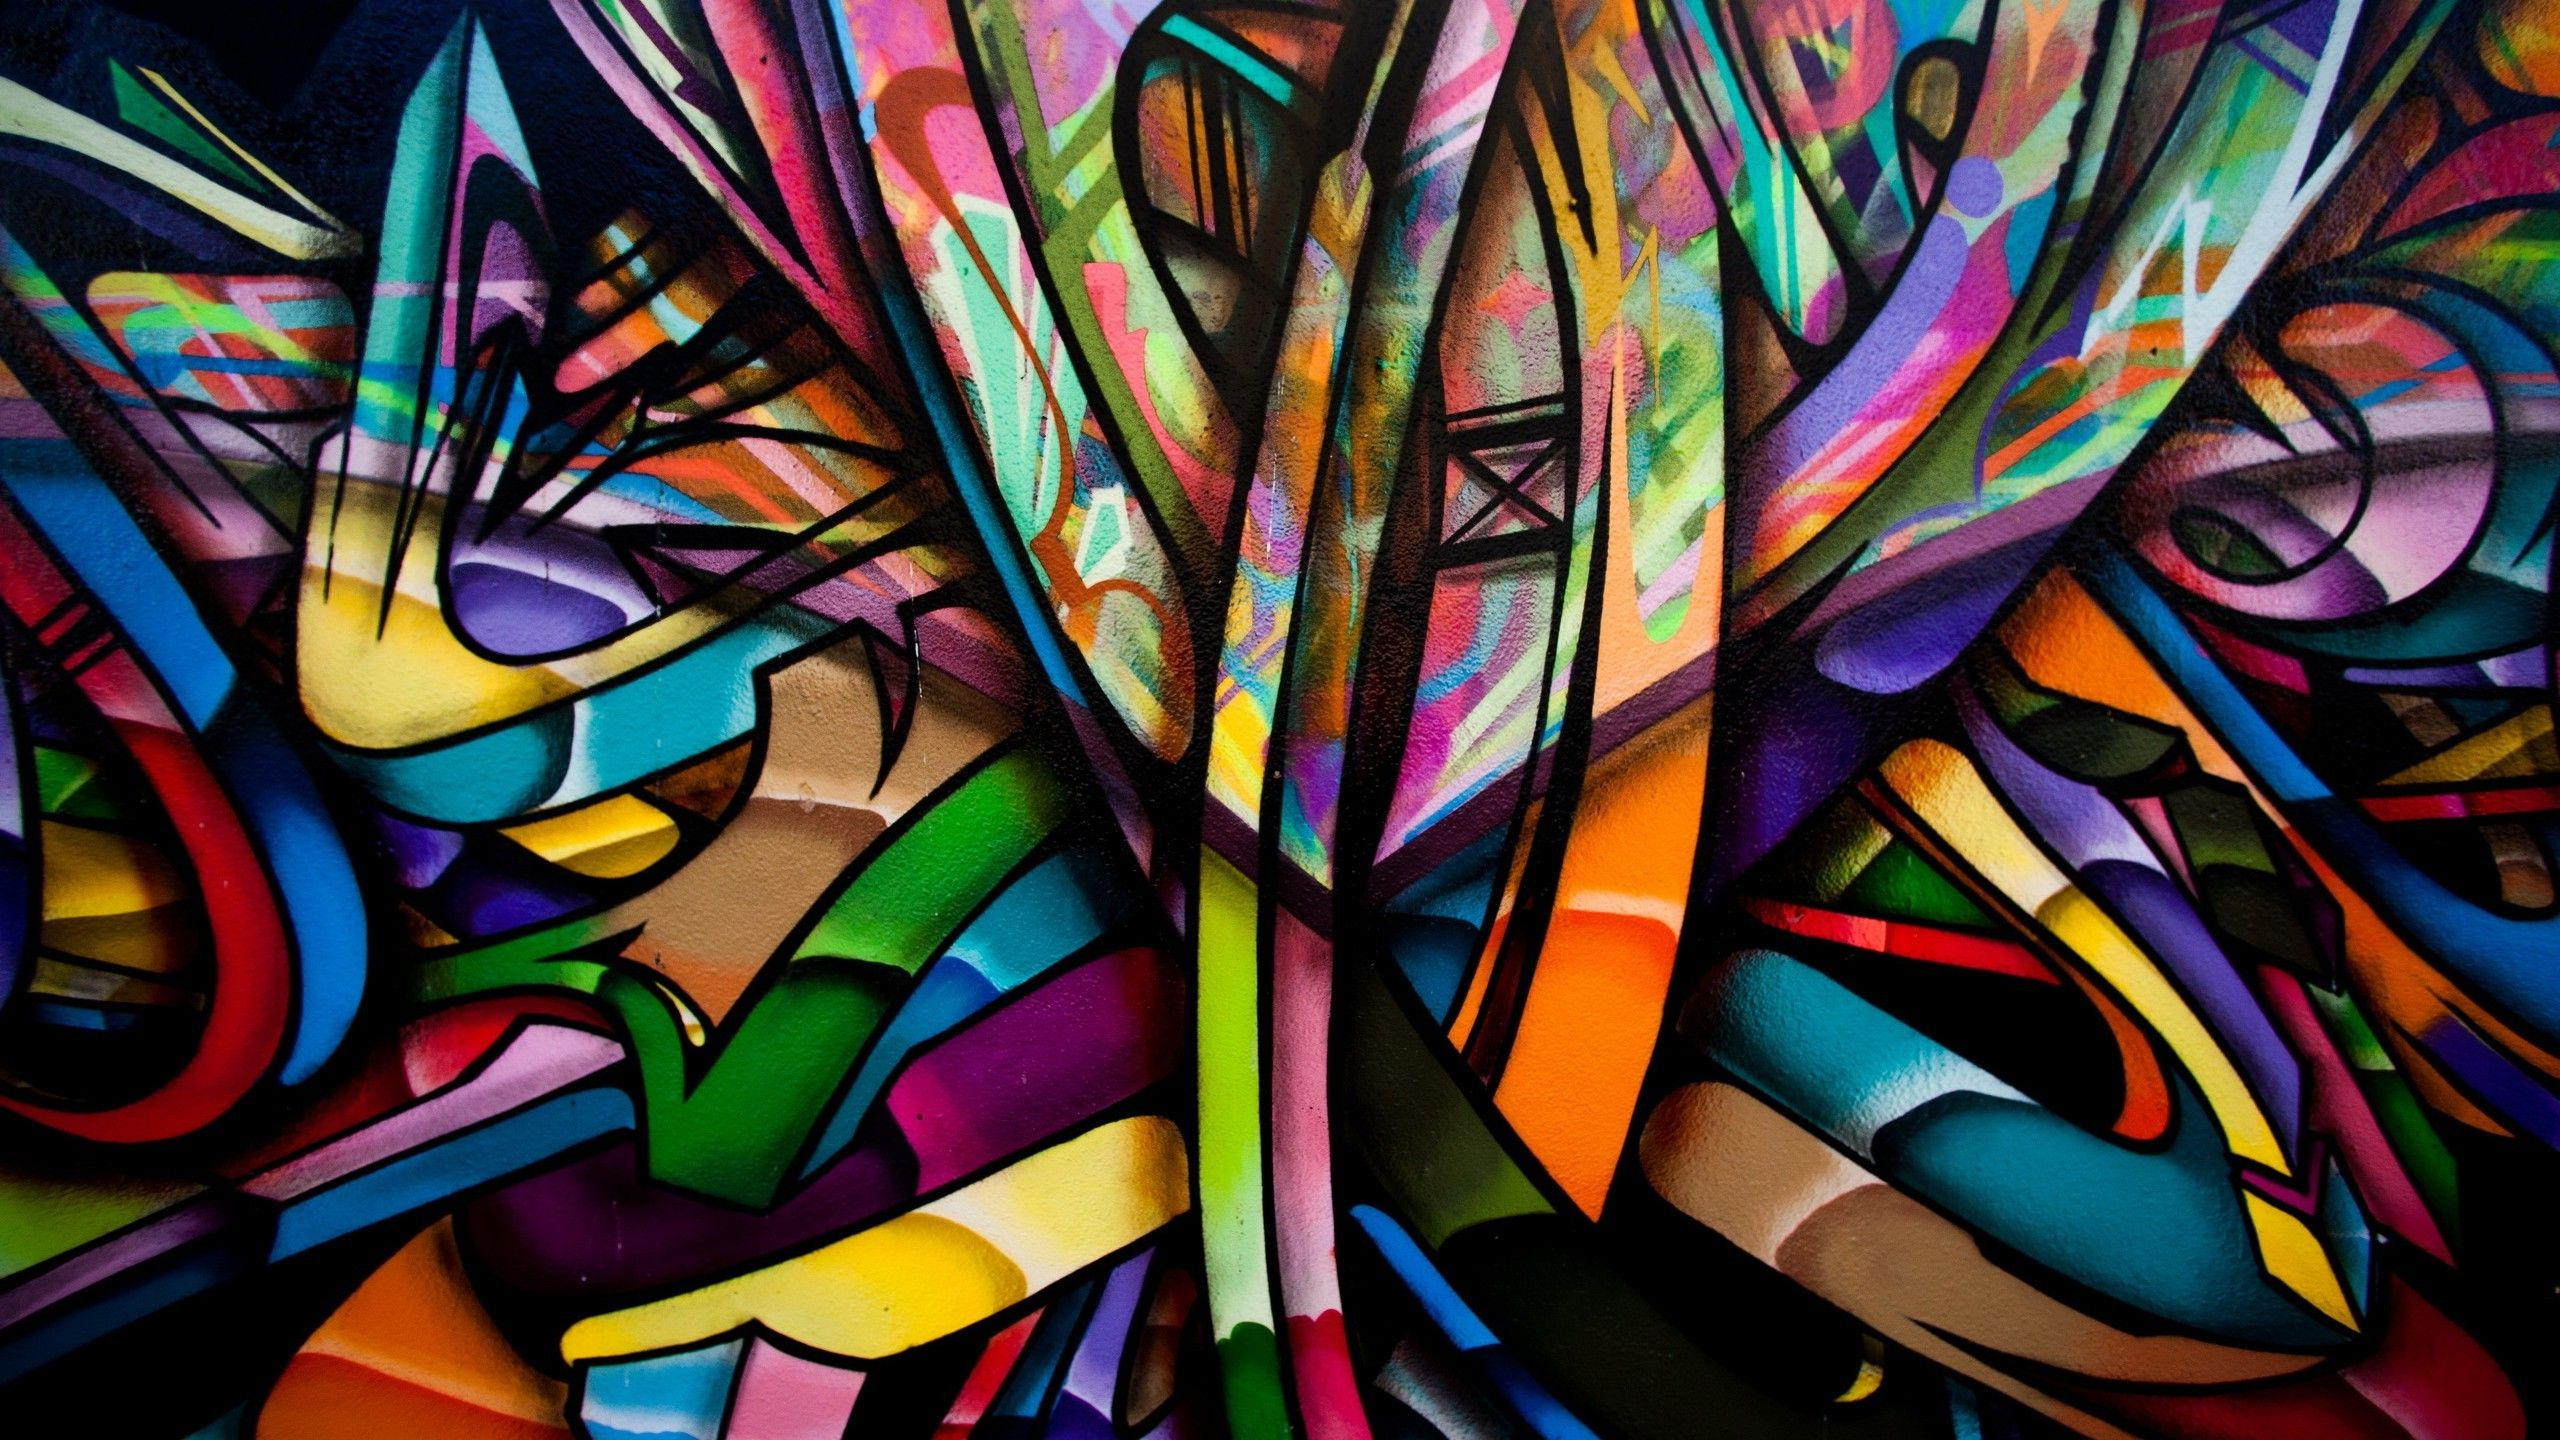 Abstract Colorful Graffiti Walls Artwork Painting